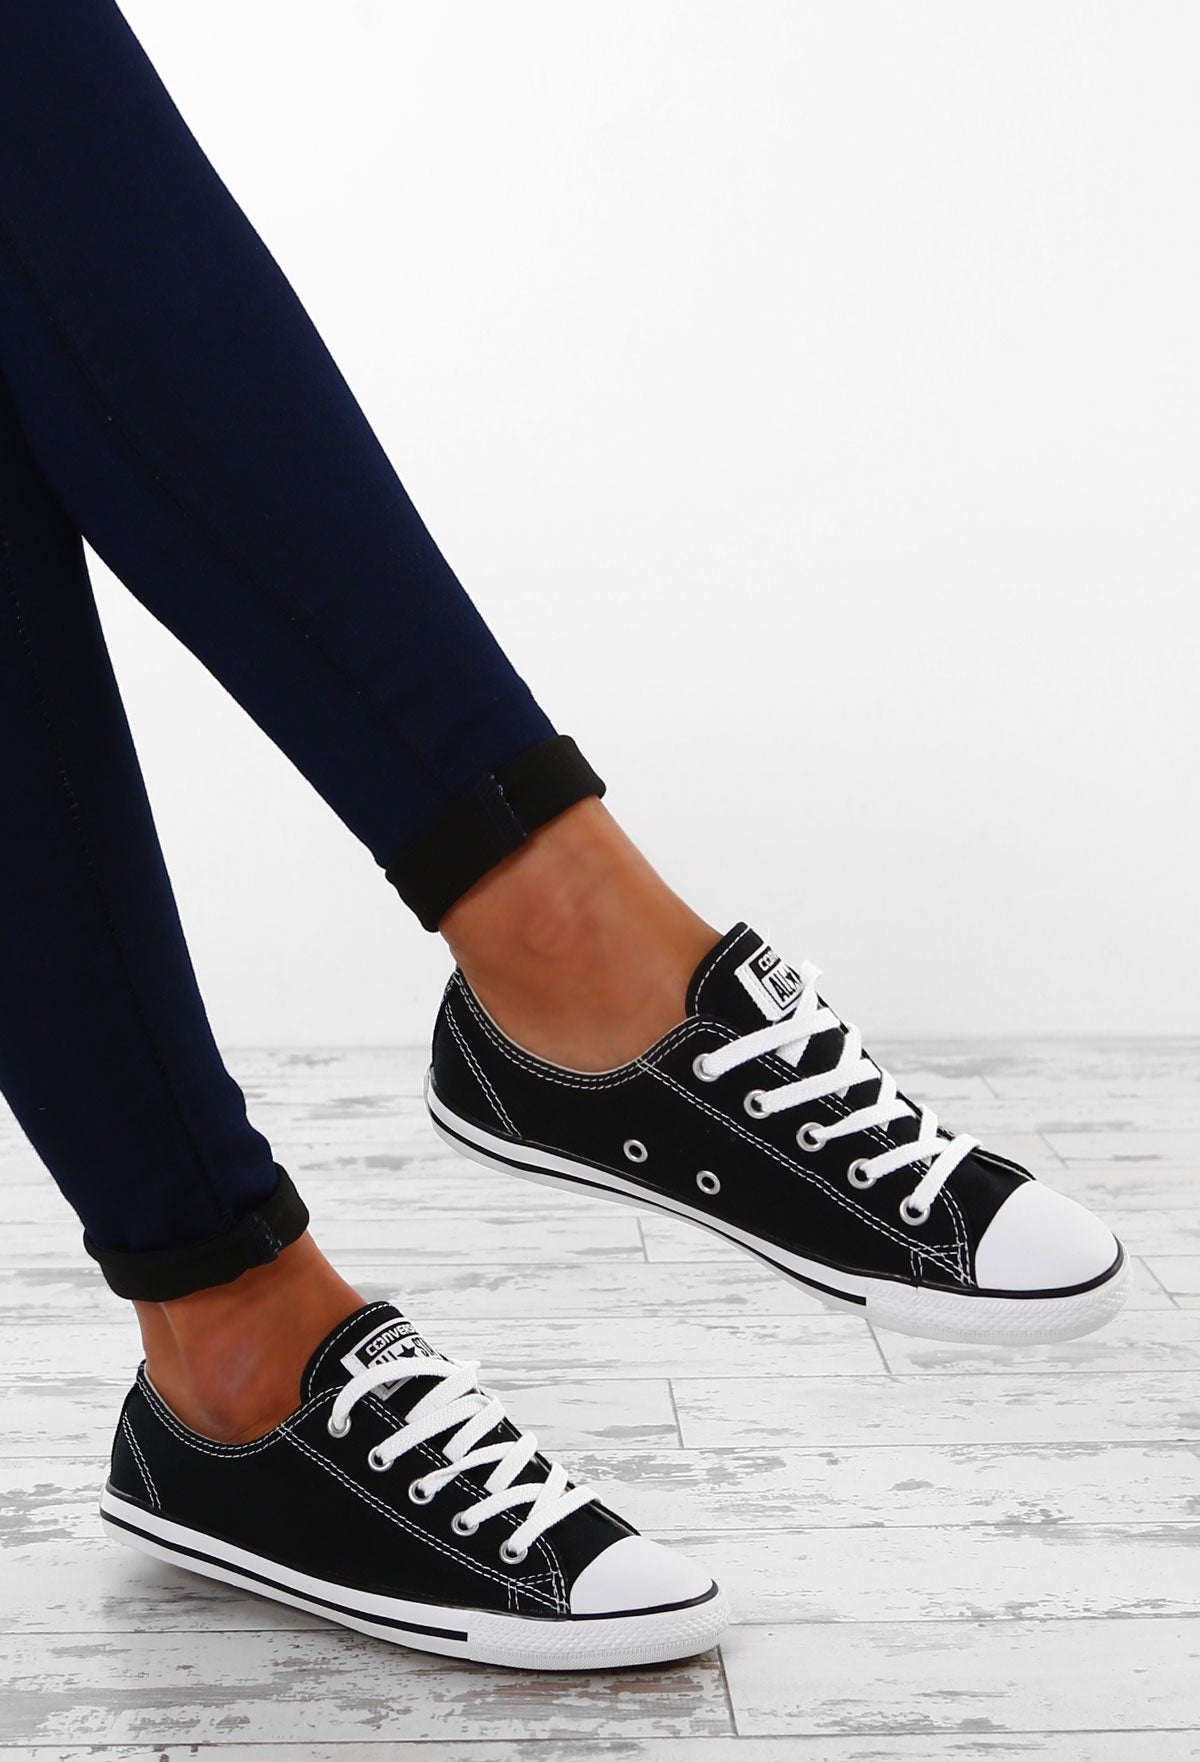 fdadea0a705ea7 Chuck Taylor Converse All Star Dainty Ox Black Trainers – Pink ...